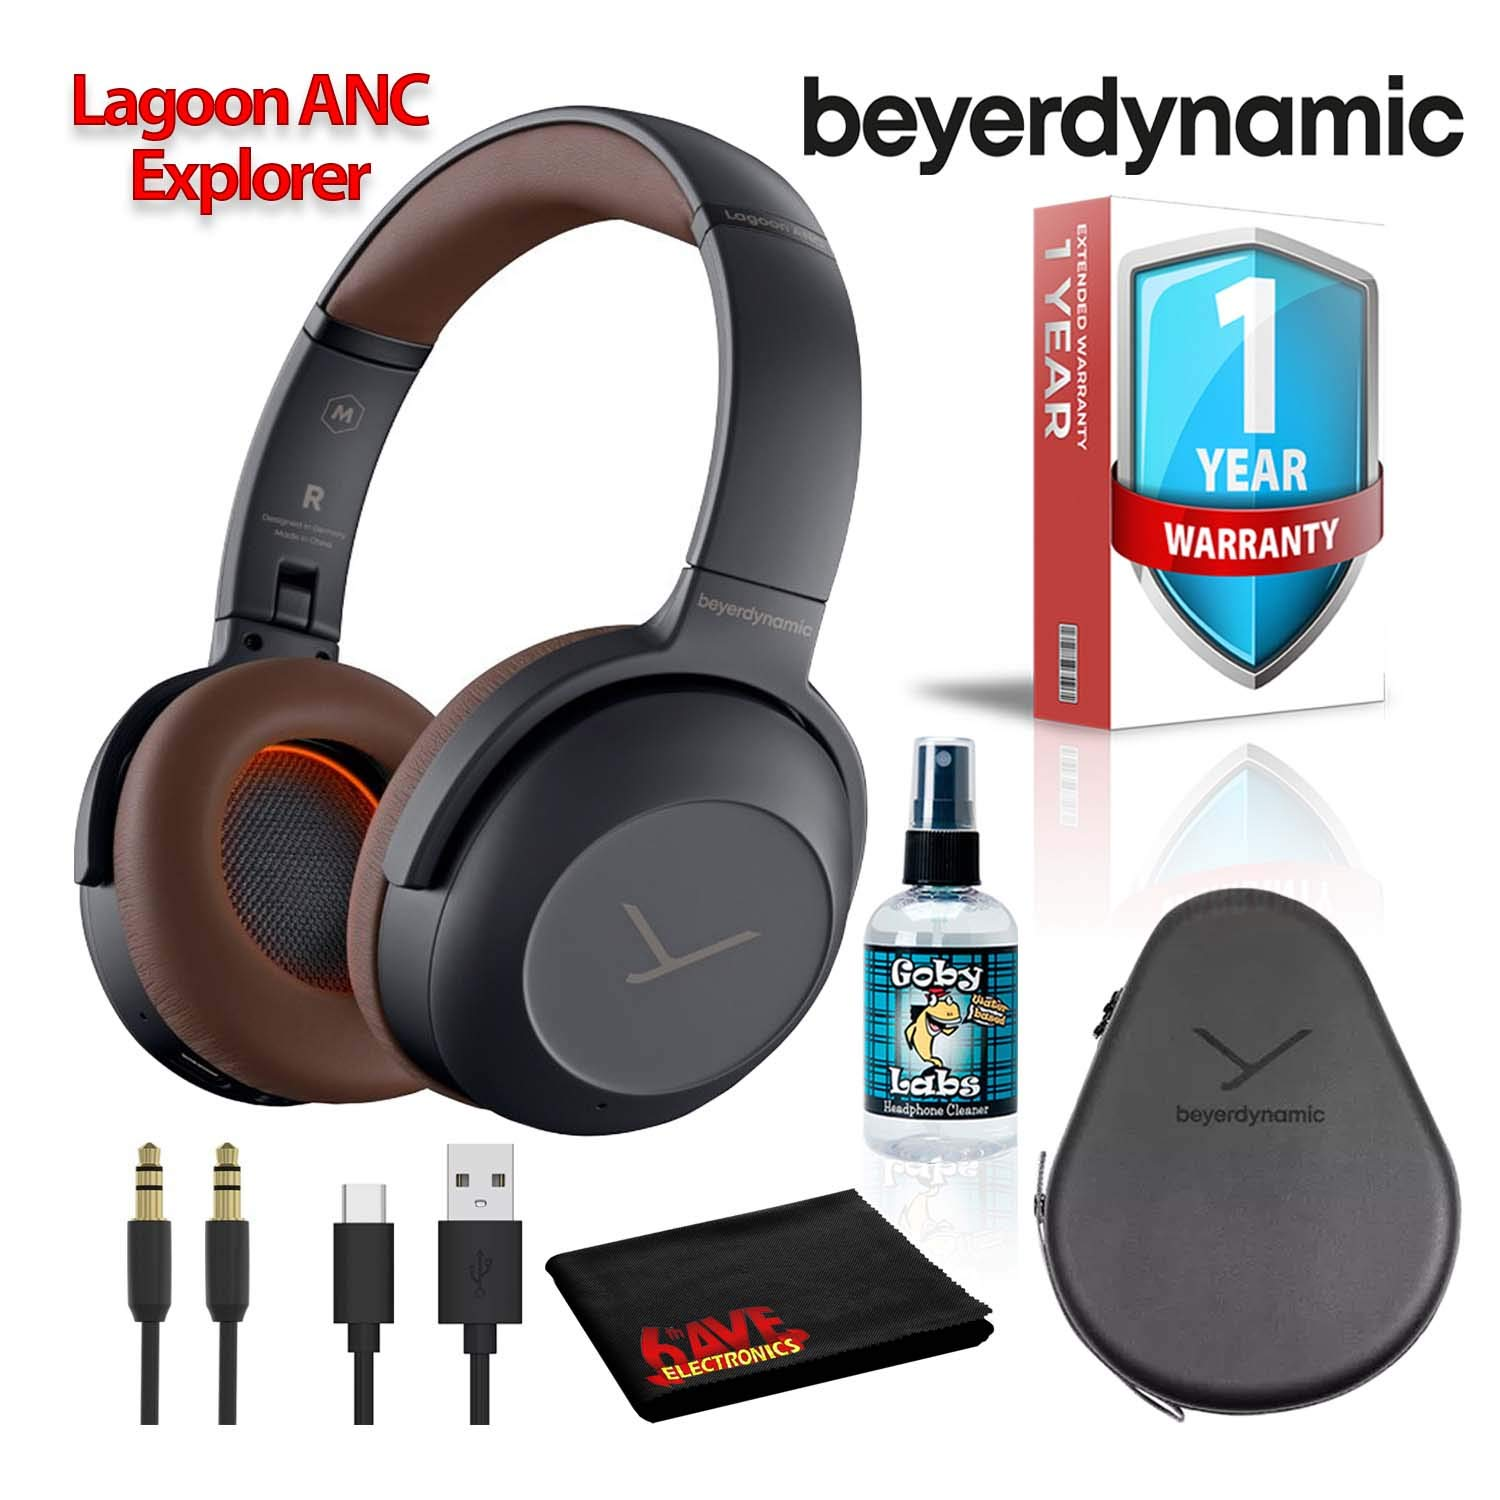 Beyerdynamic Lagoon ANC Explorer Bluetooth Over-Ear Headphones with ANC and Sound Personalization (Grey/Brown) with Hard Case, 6Ave Cleaning Kit, and 1-Year Extended Warranty